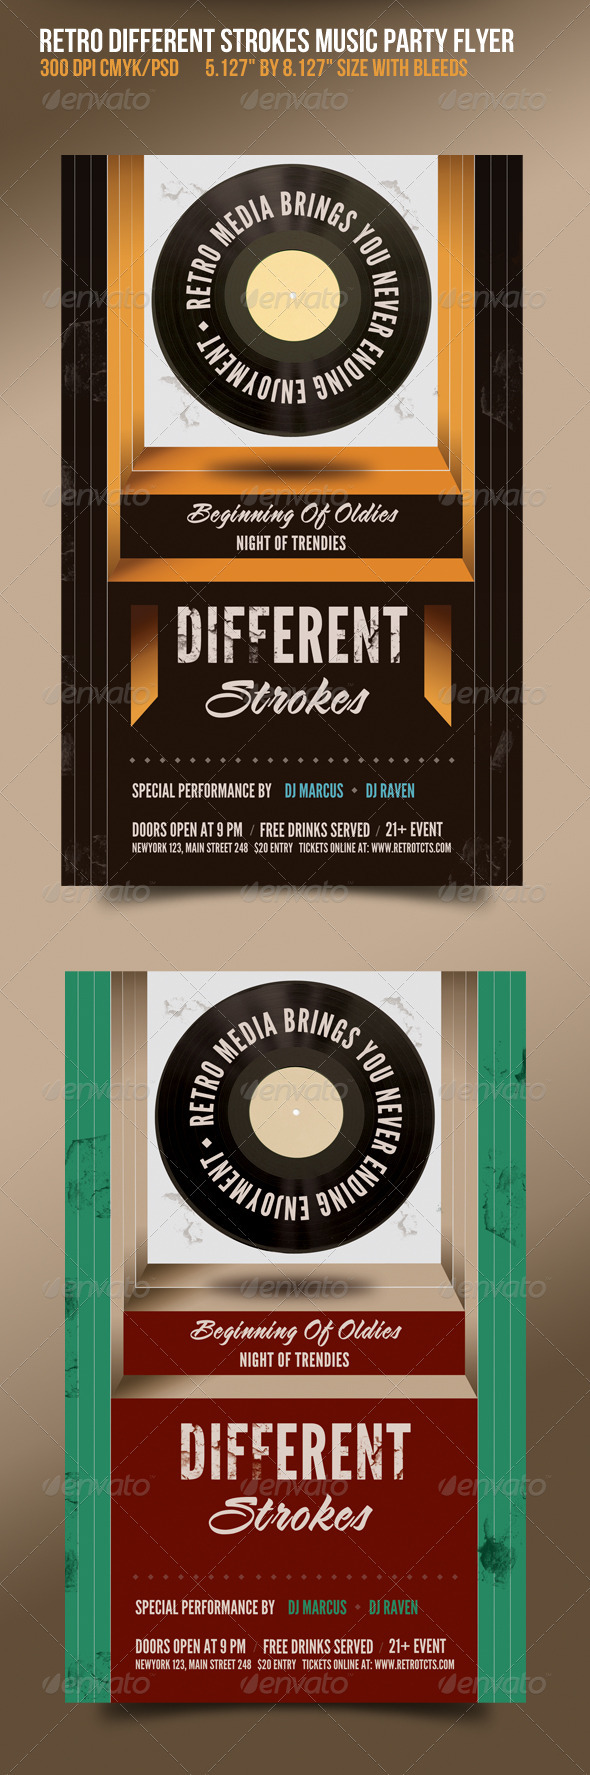 GraphicRiver Different Strokes Retro Music Dance Party Flyer 1575659